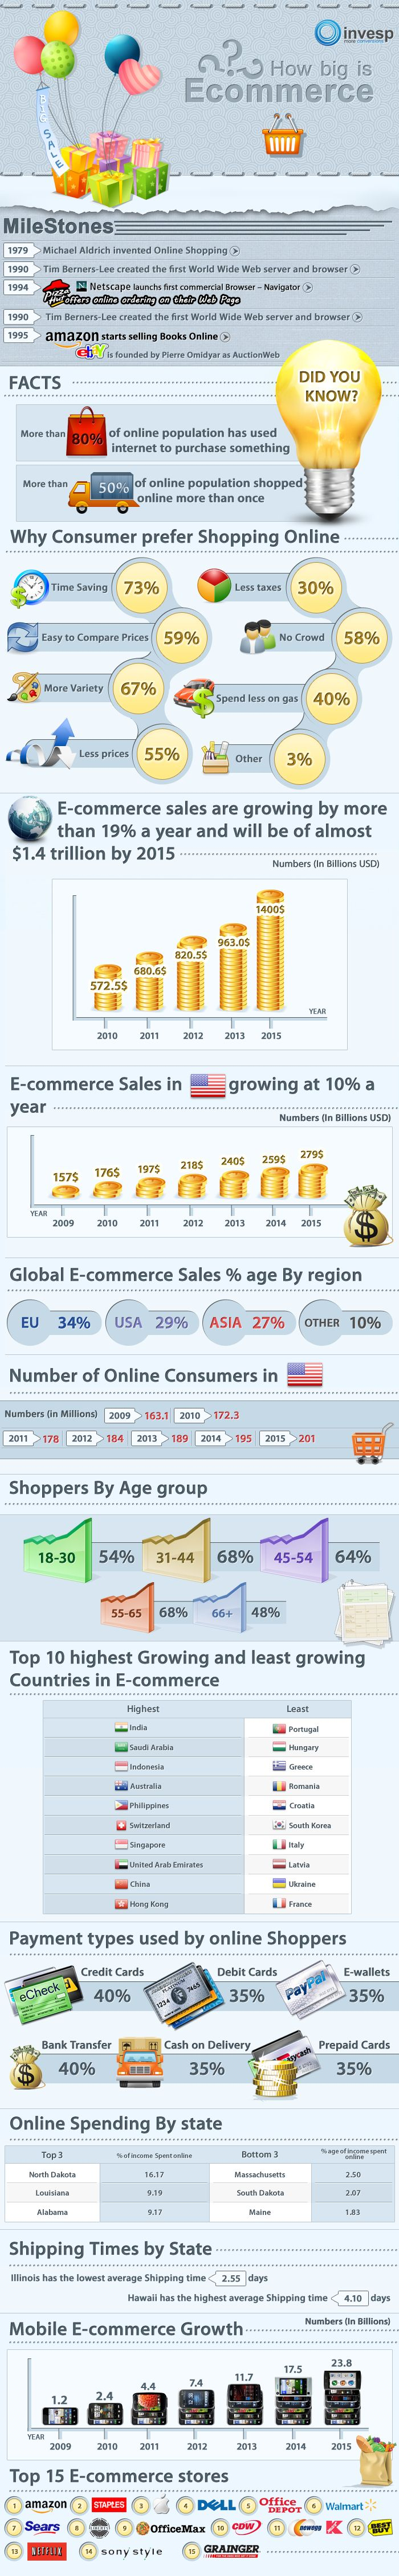 How big is e-commerce? #infográfico